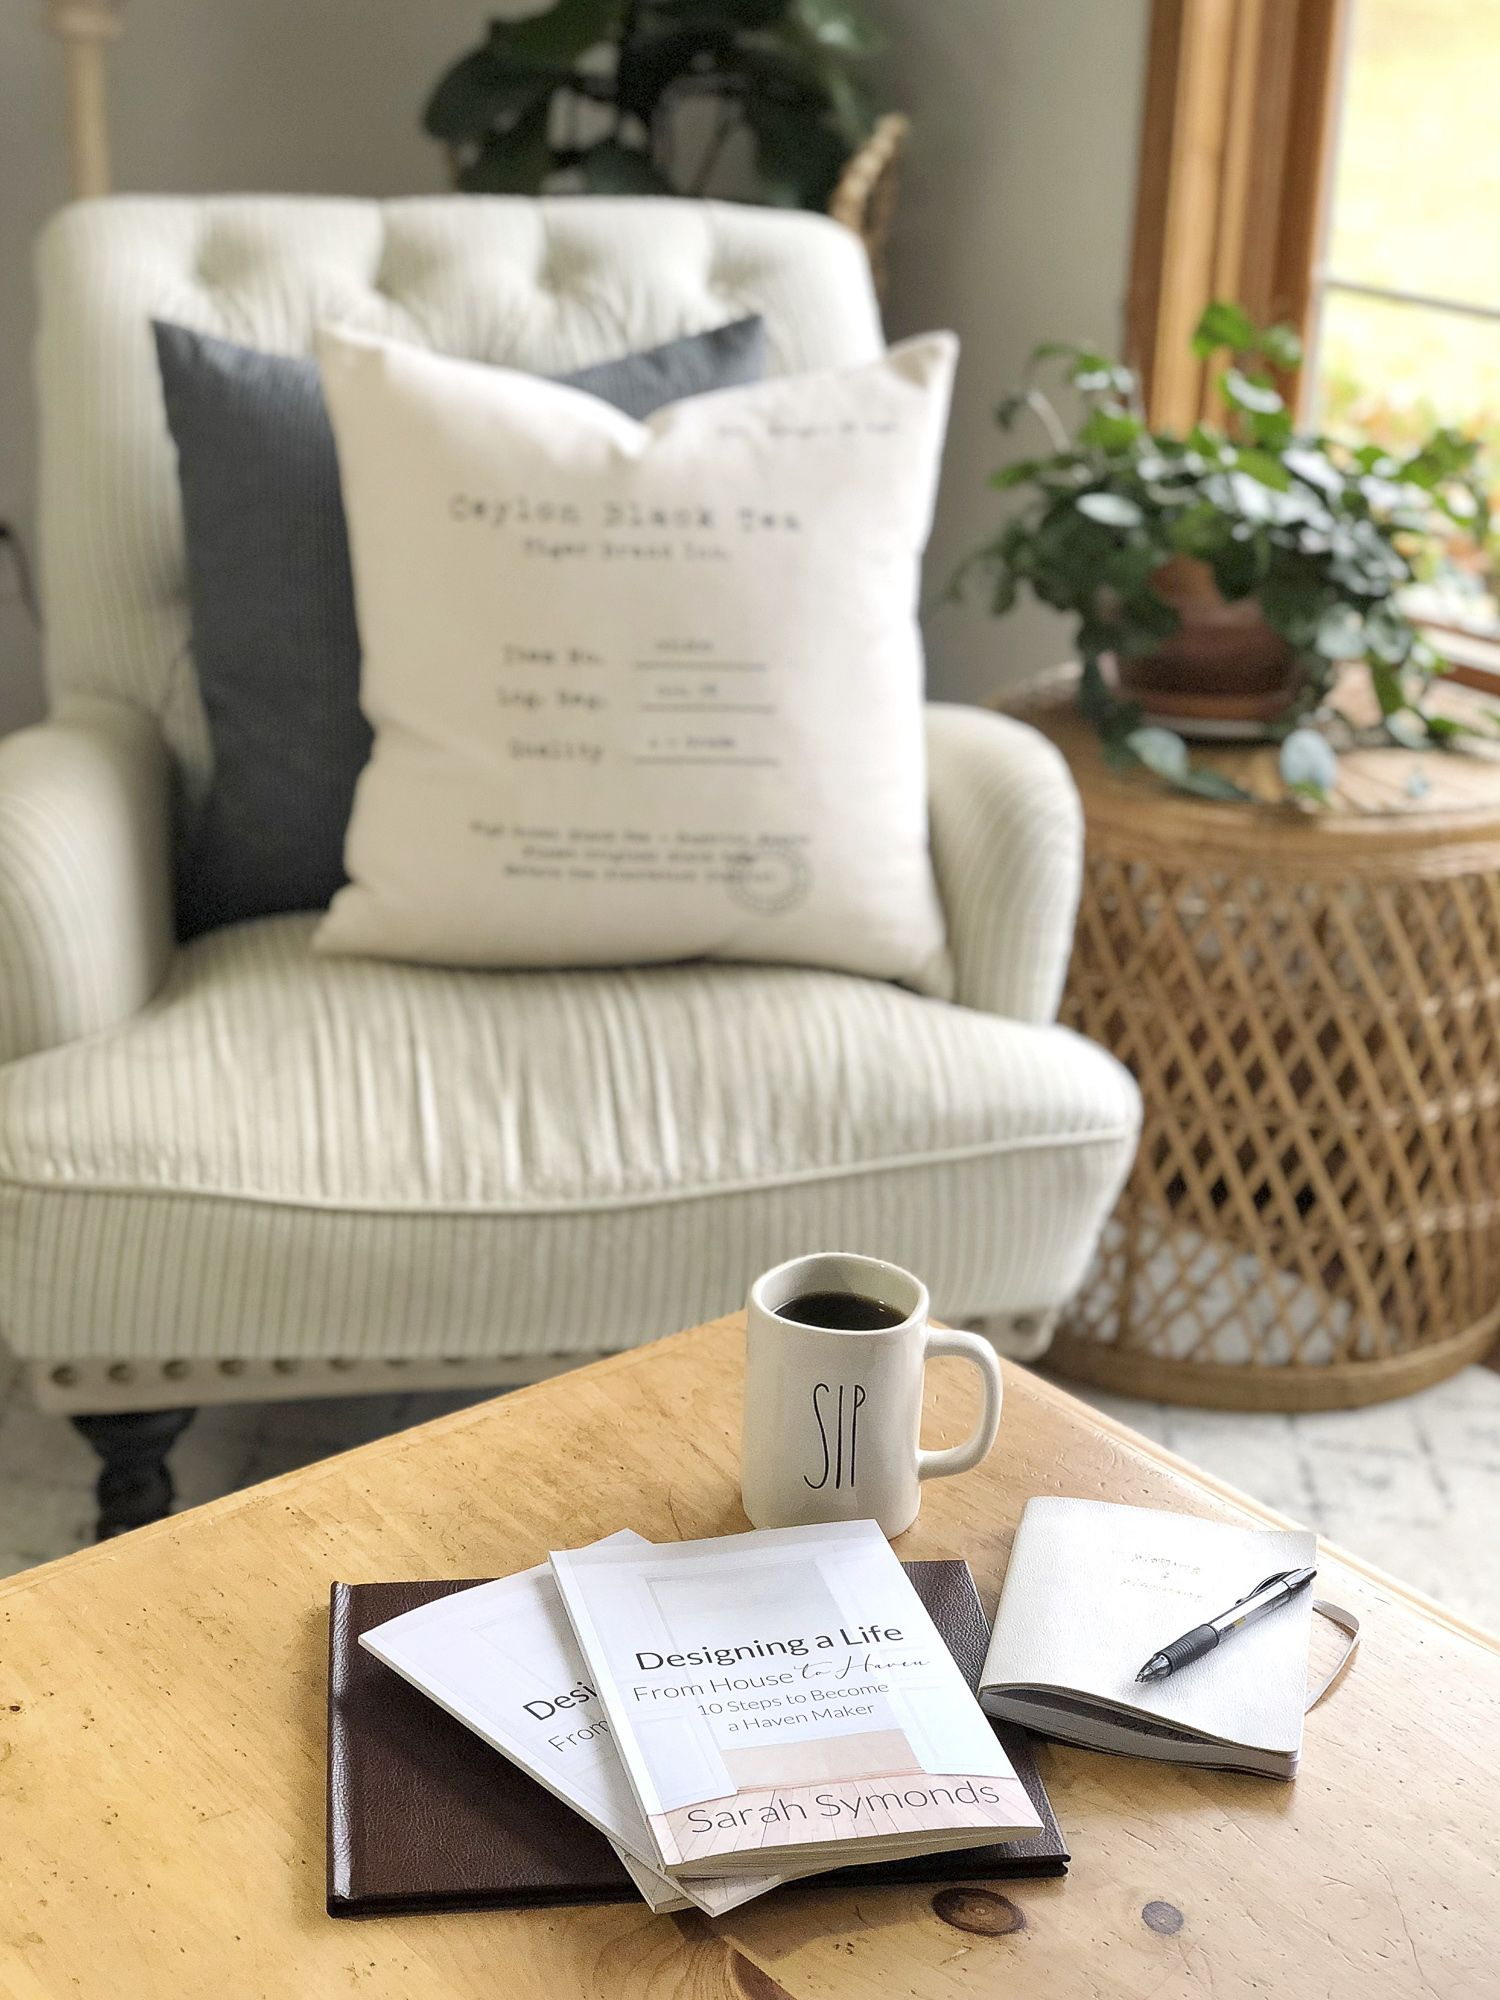 Are You Ready To Make Your House Into A Haven With My Interior Design Book Designing Life From Learn 10 Steps Become Maker